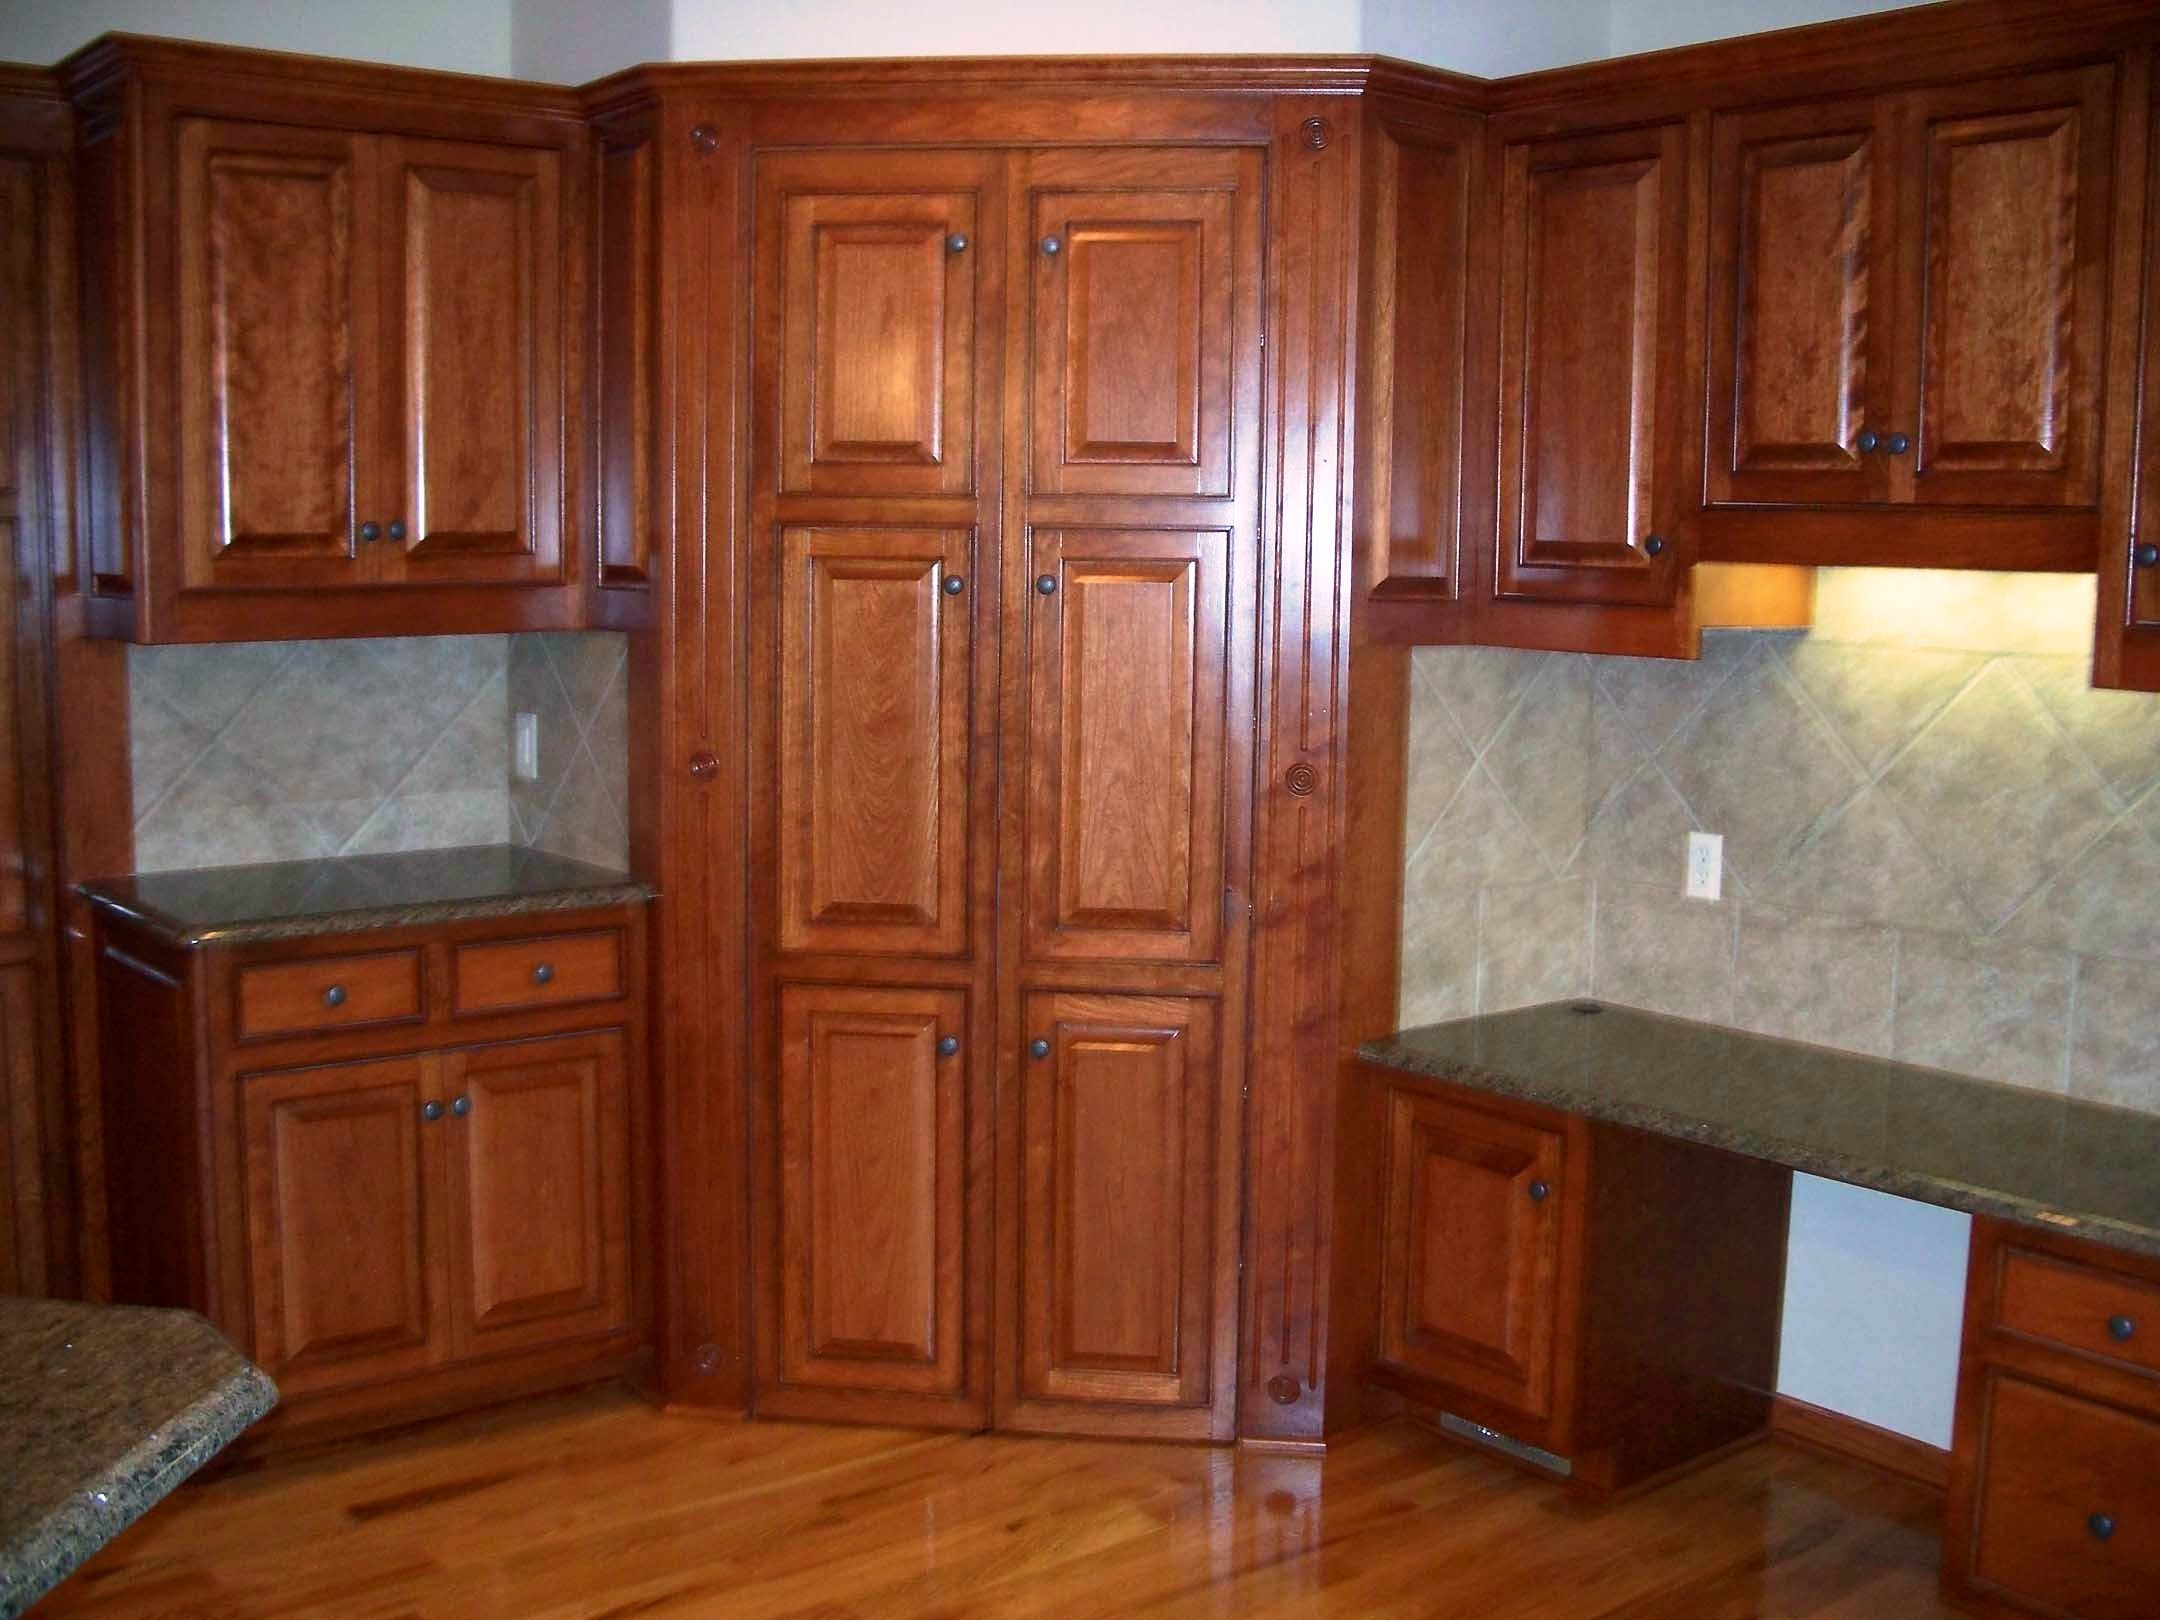 top-corner-kitchen-cabinet